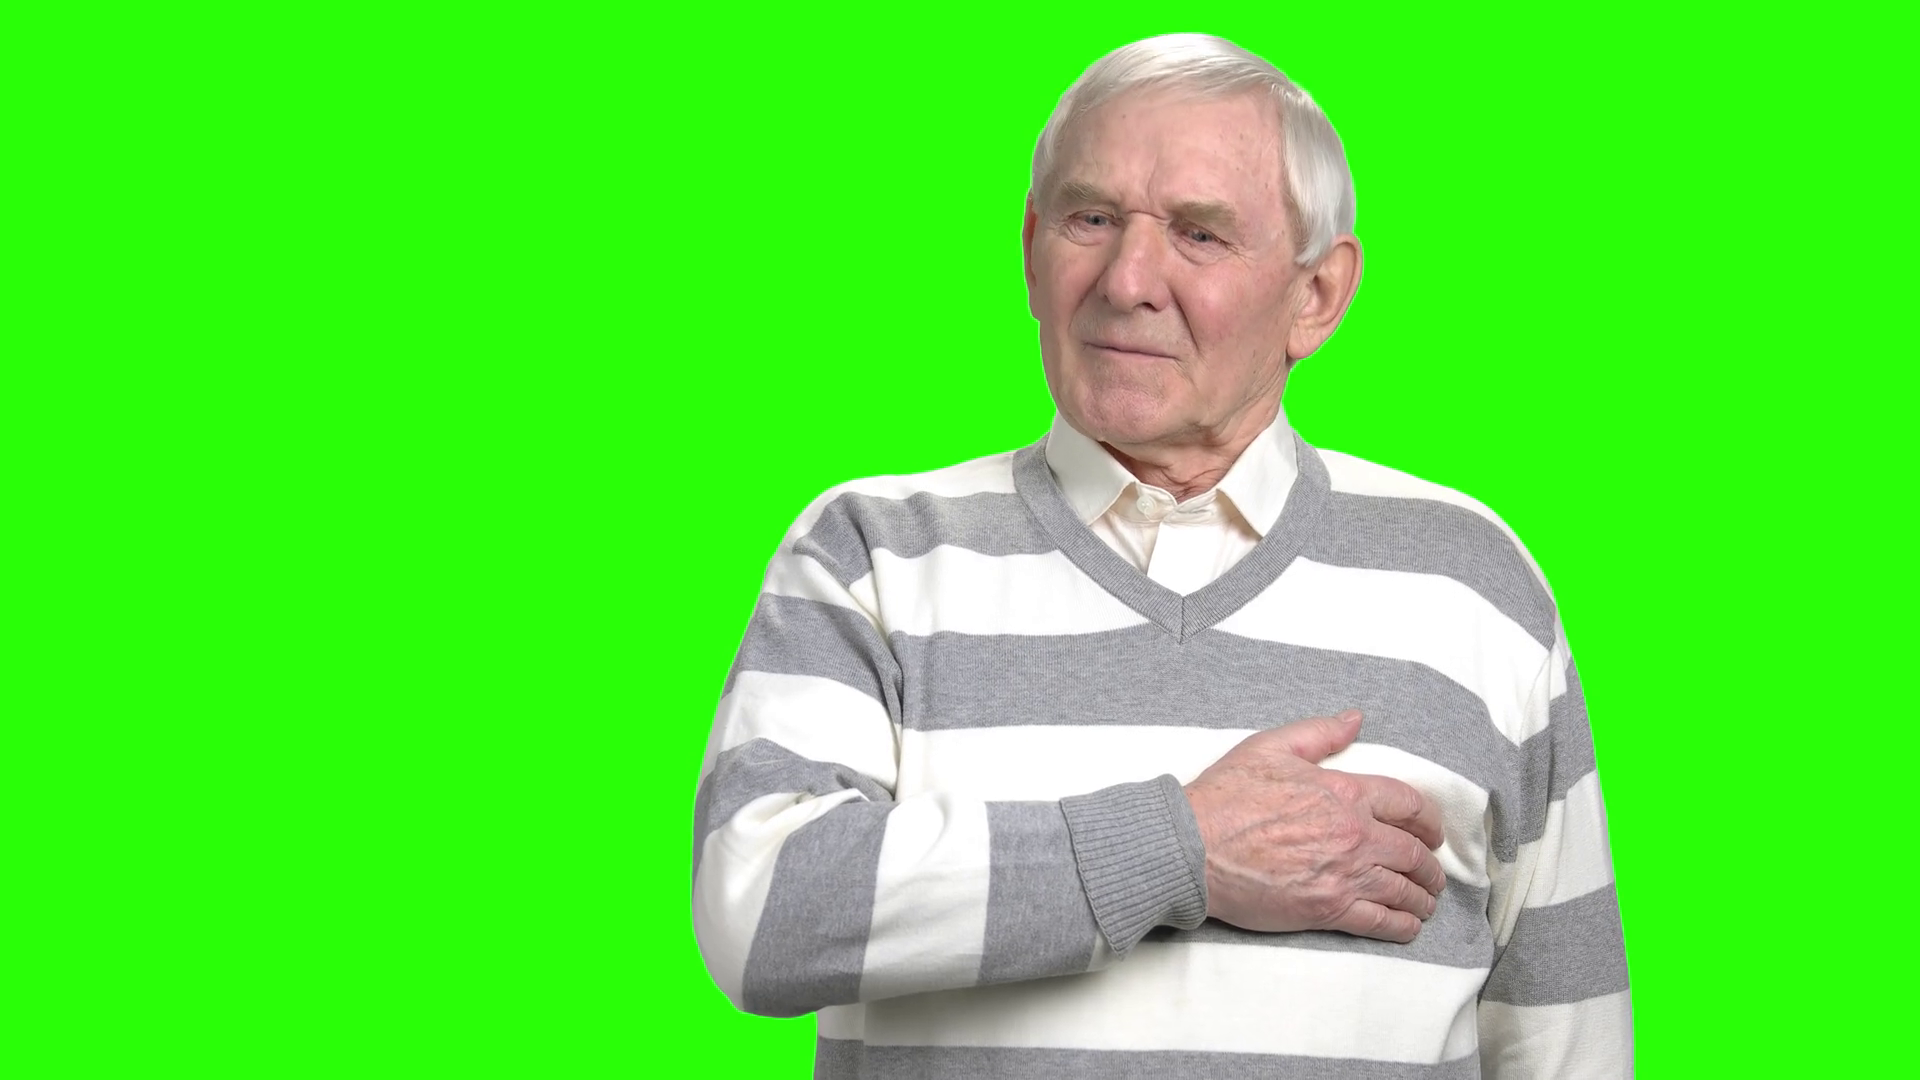 Old man has heart attack. Grandpa touching his chest and going to die,  green hromakey background. Stock Video Footage - VideoBlocks - Heart Attack PNG HD